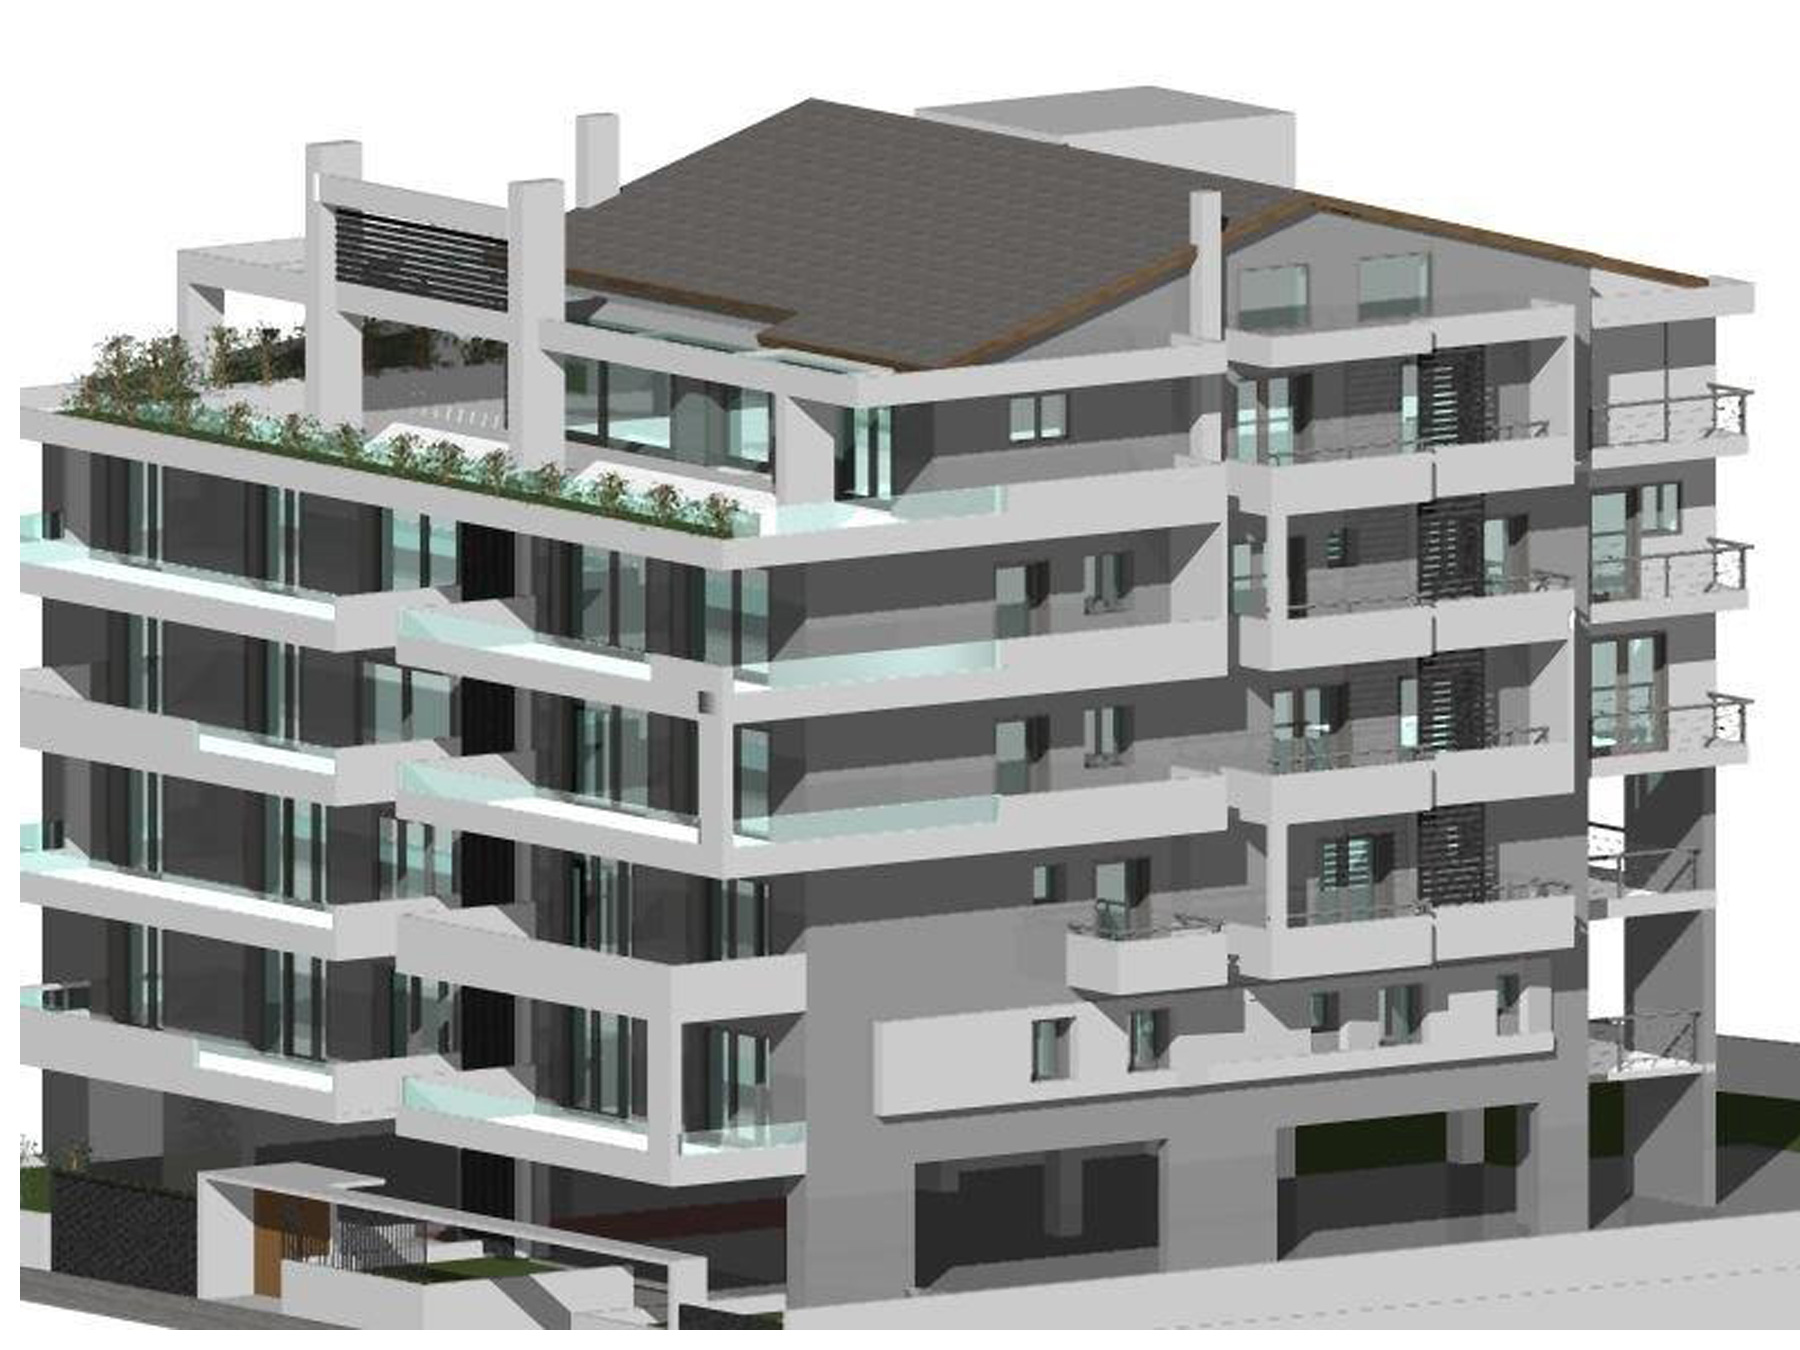 For sale under construction 3 bedroom apartment 117 sq.m. 4th floor with parking and storage in the center of Ioannina